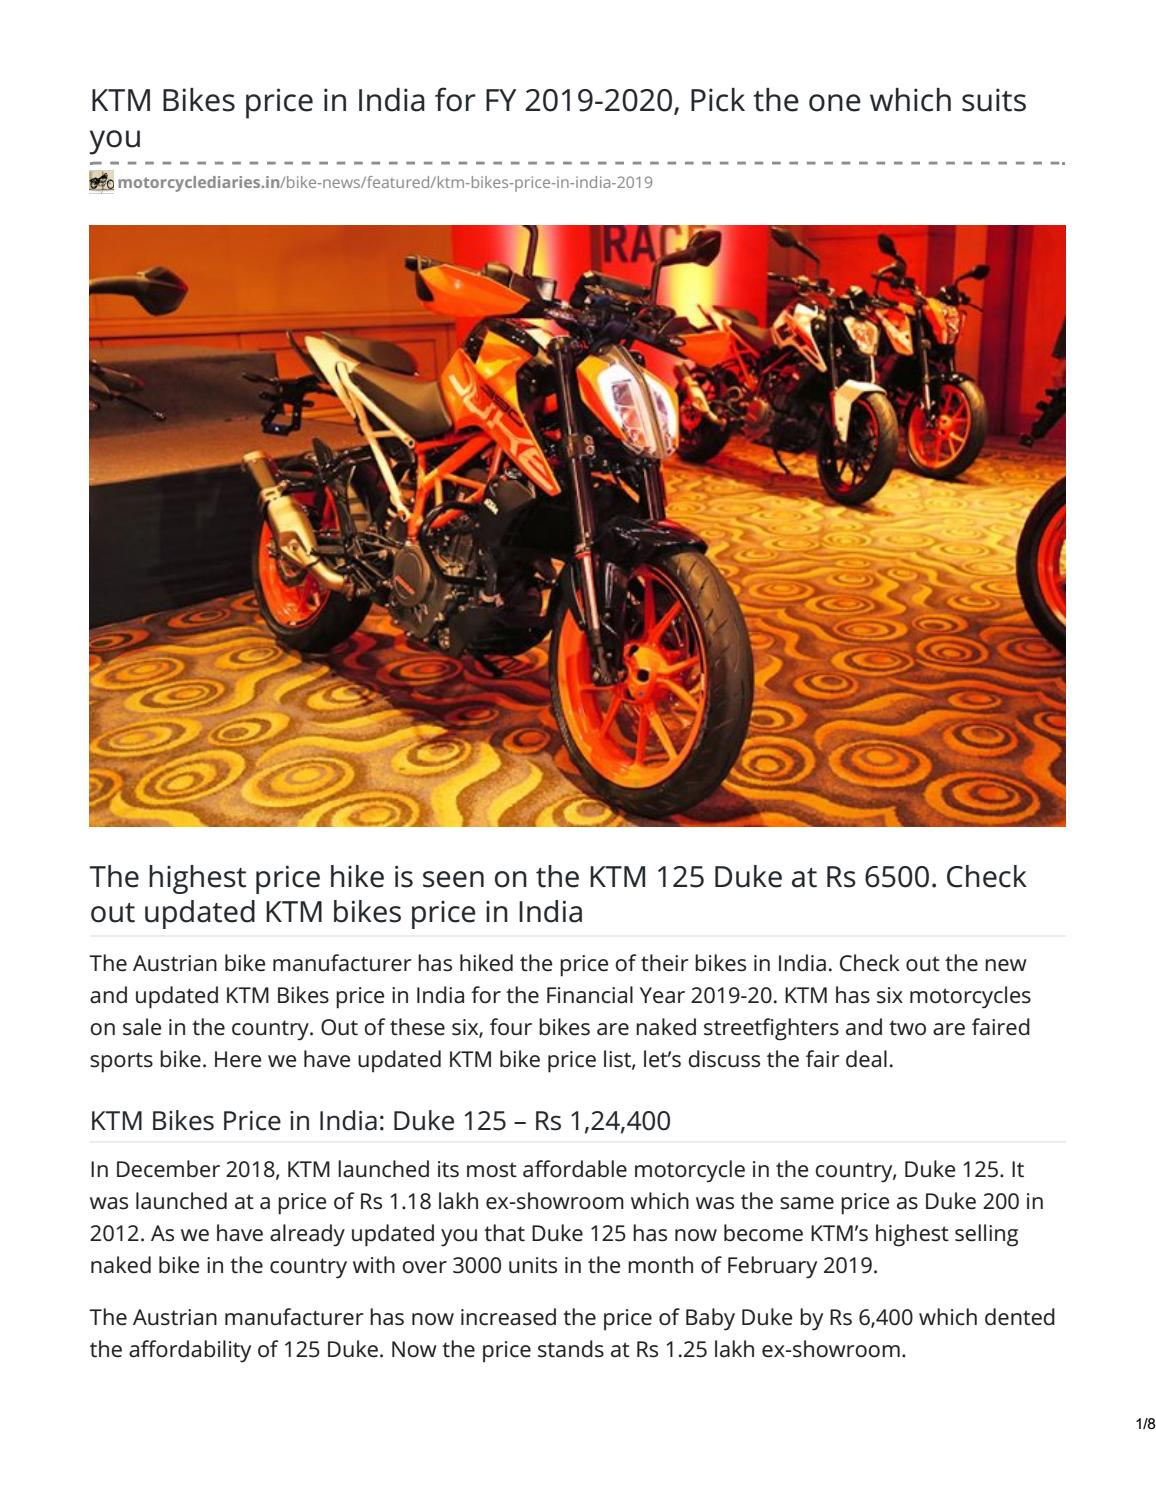 Ktm Bikes Price In India Fy 2019 20 Details Price Features Mileage By Motorcyclediaries Issuu